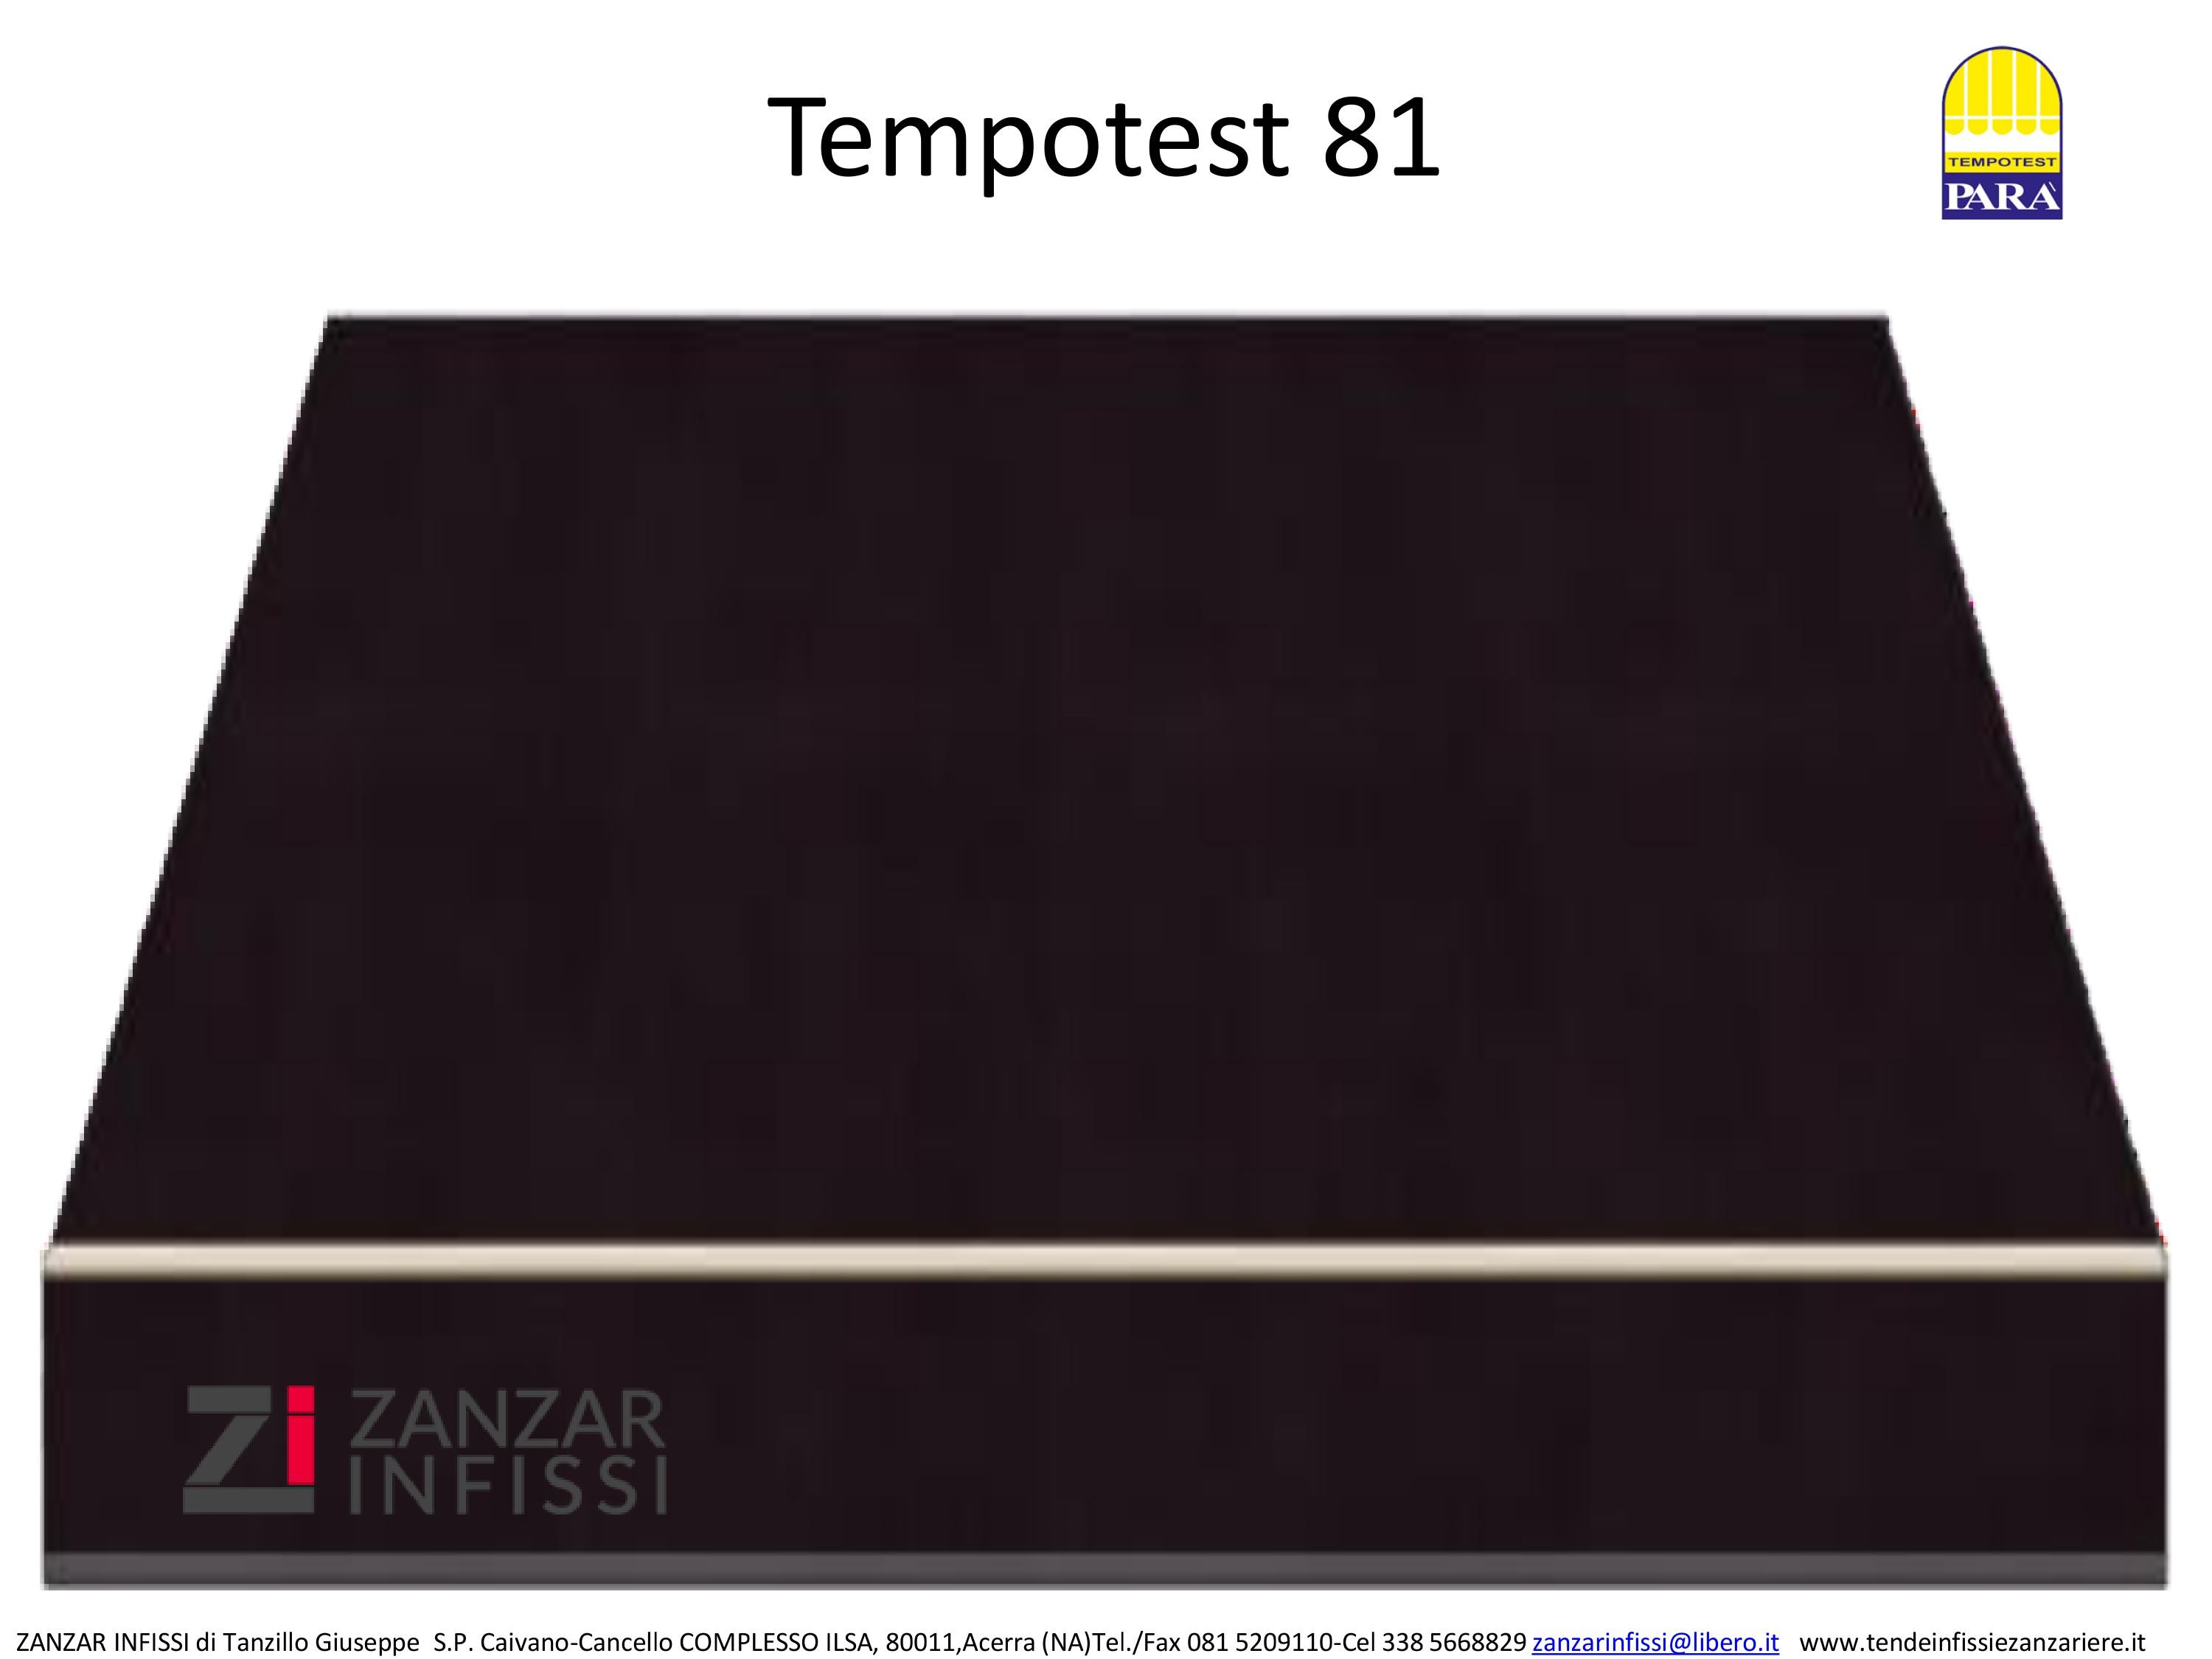 Tempotest 81